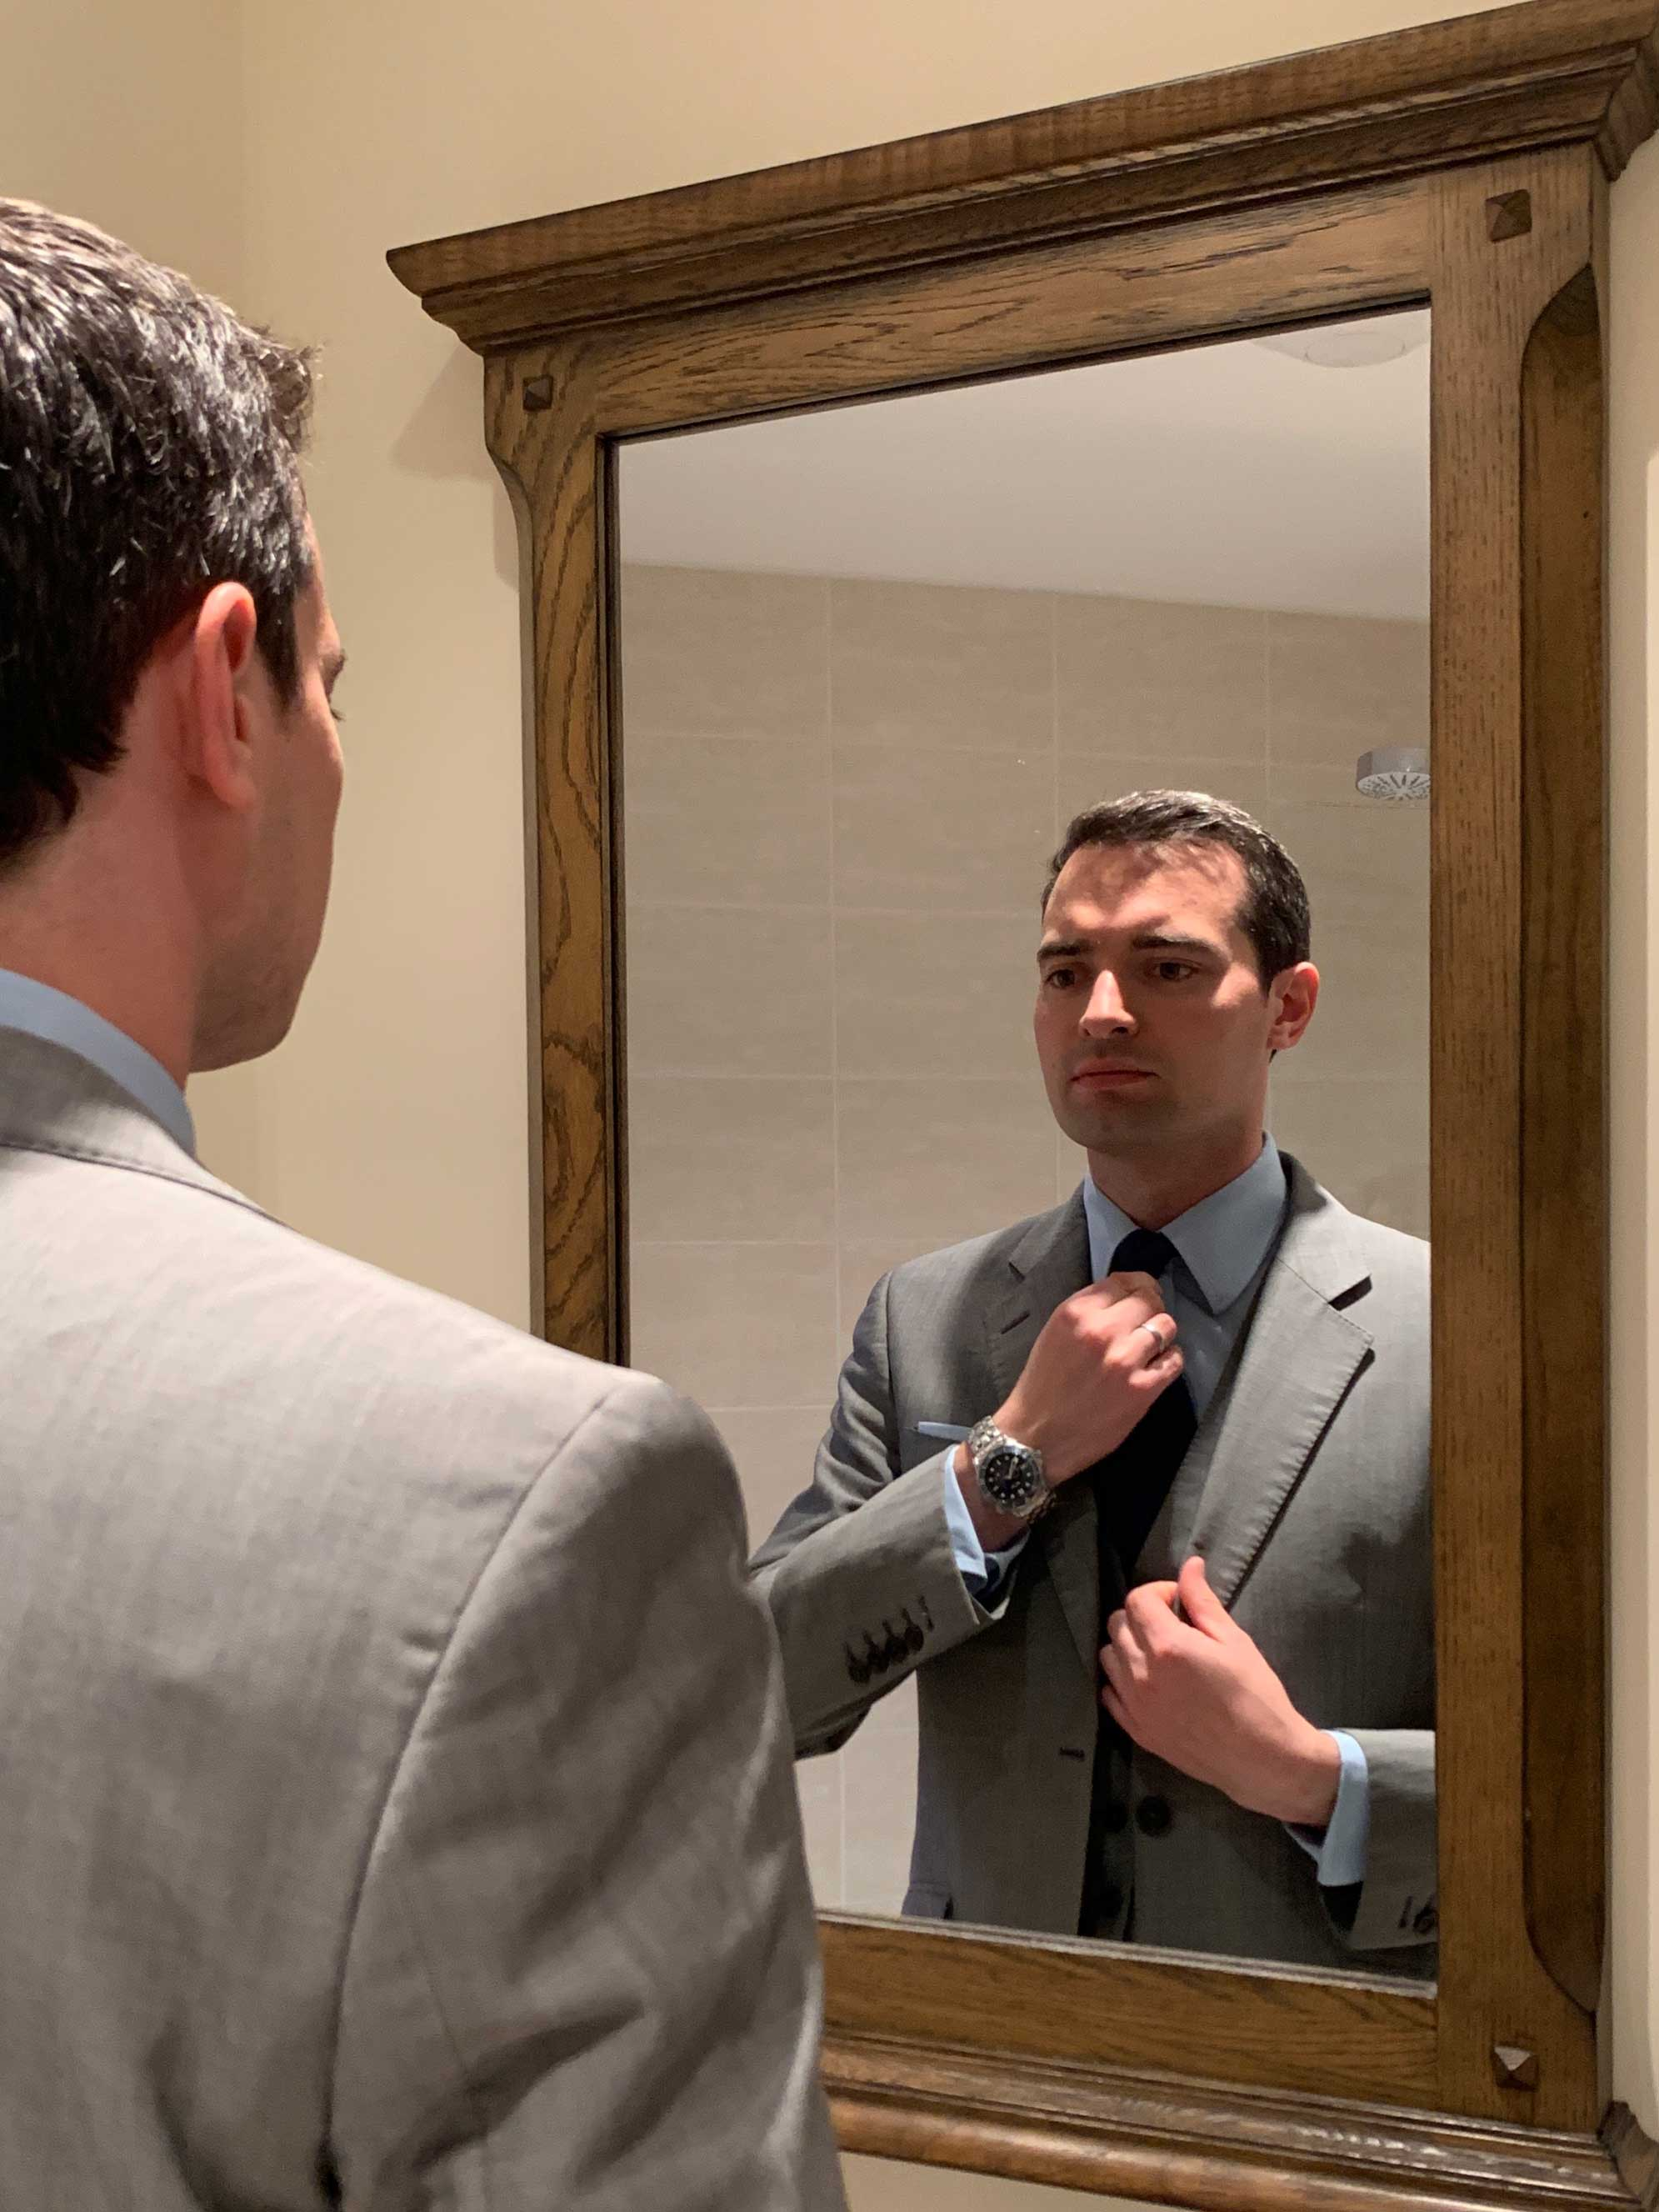 daniel in the mirror in a suit